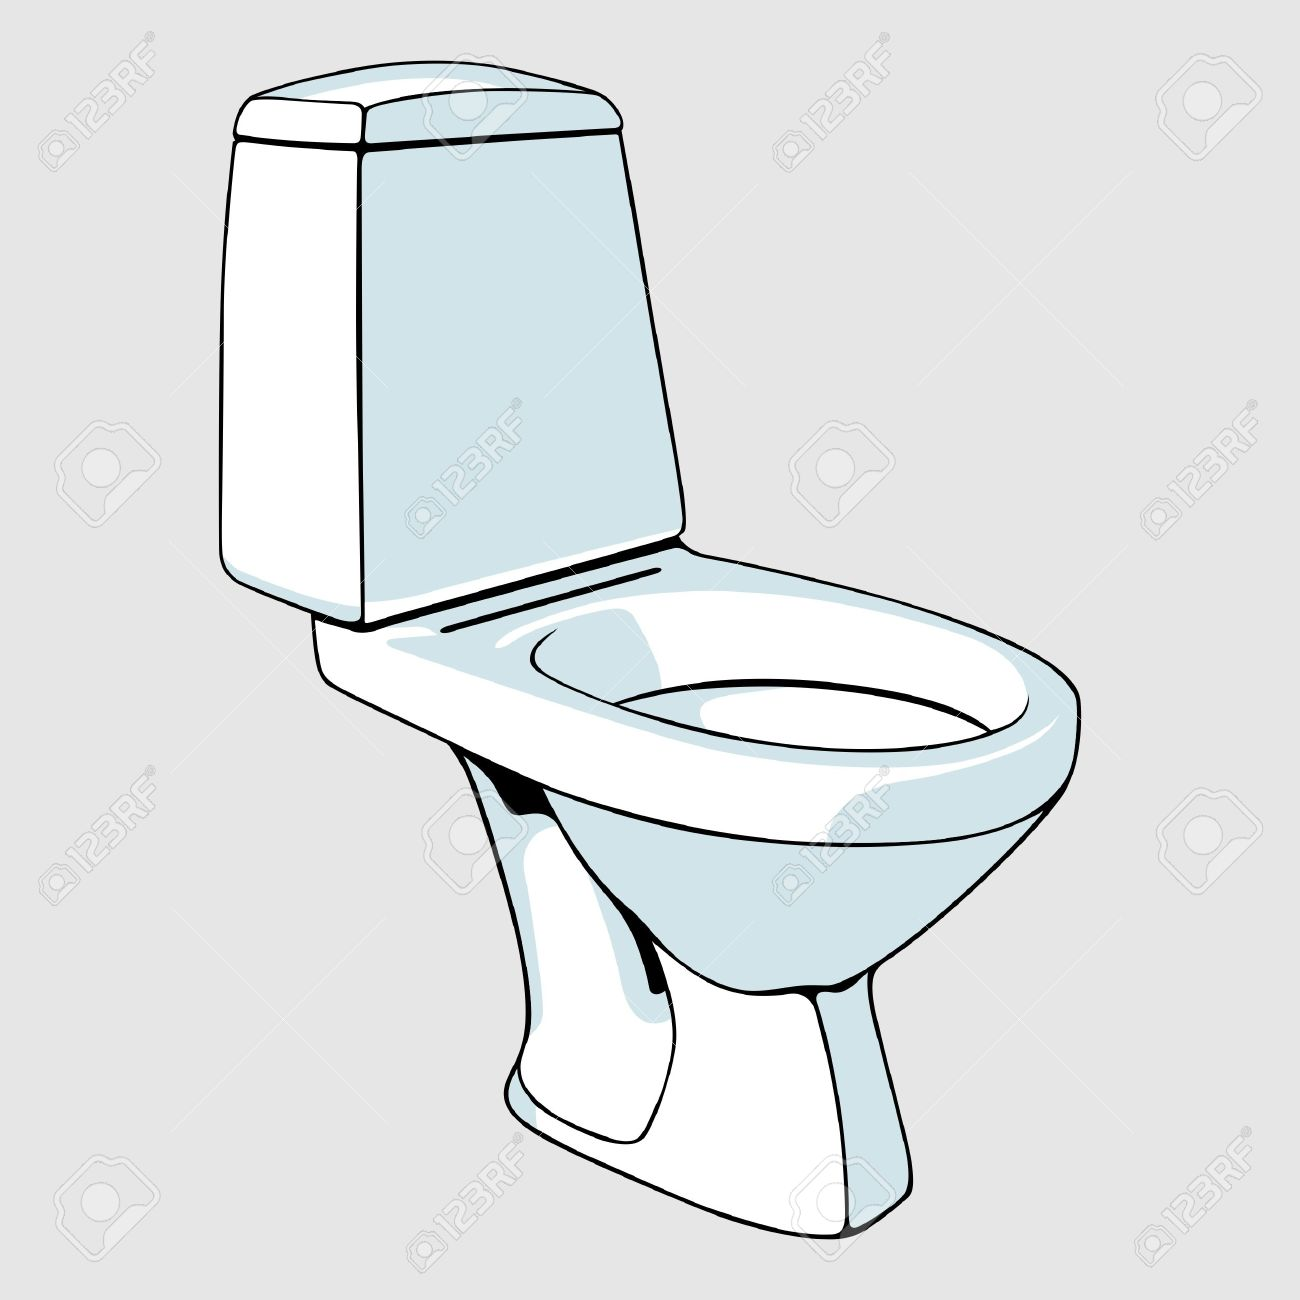 toilet bowl  Toilet bowl. 3 221 Toilet Bowl Stock Illustrations  Cliparts And Royalty Free